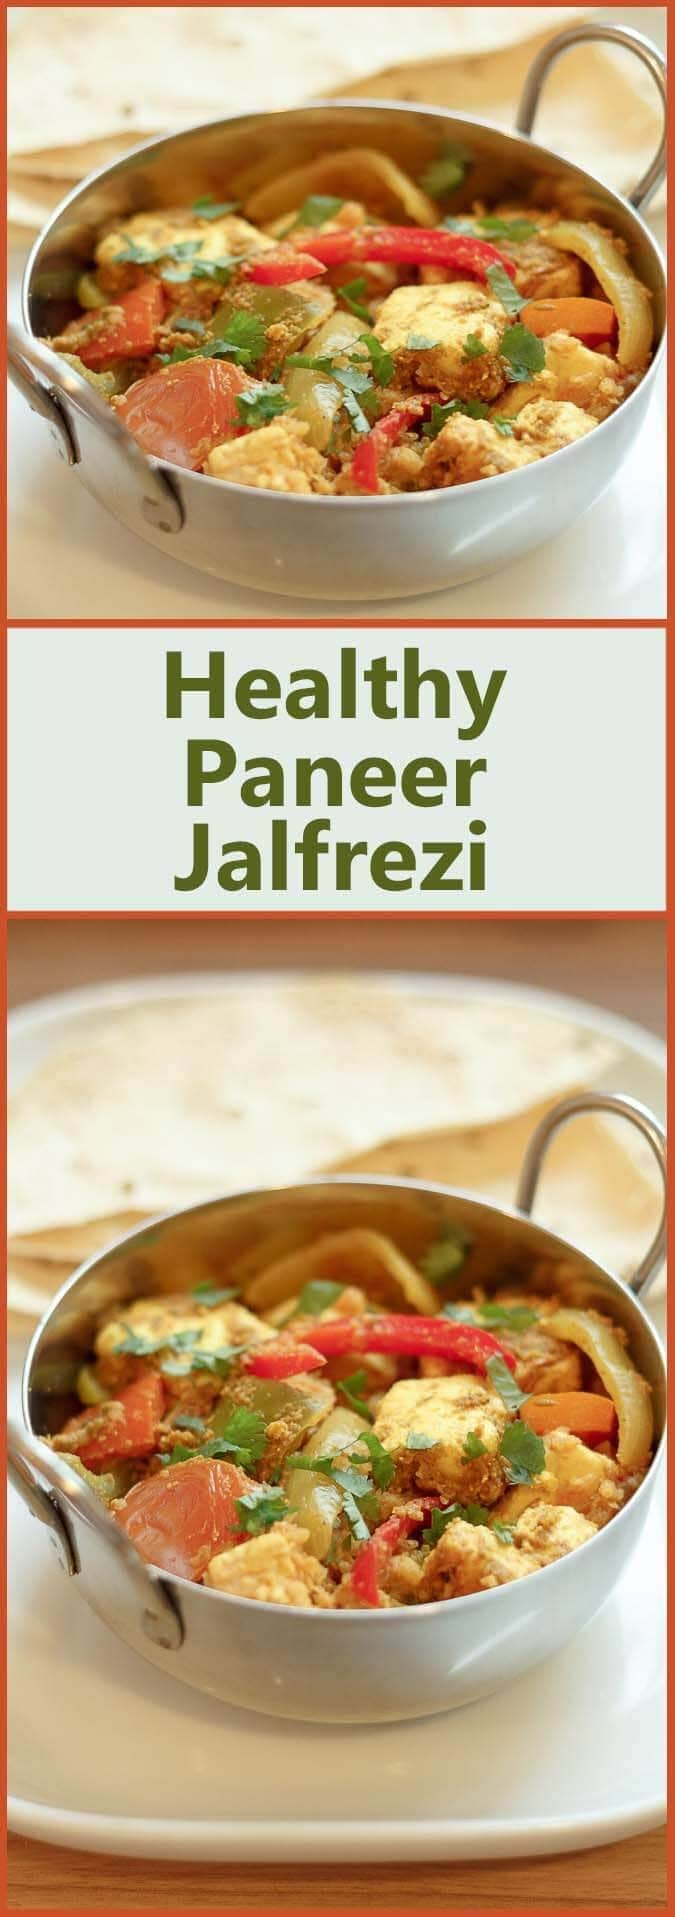 Healthy paneer jalfrezi is my take on the classic Indian jalfrezi dish Not only have I made it healthier, but I've used paneer cheese too making it also suitable for vegetarians.